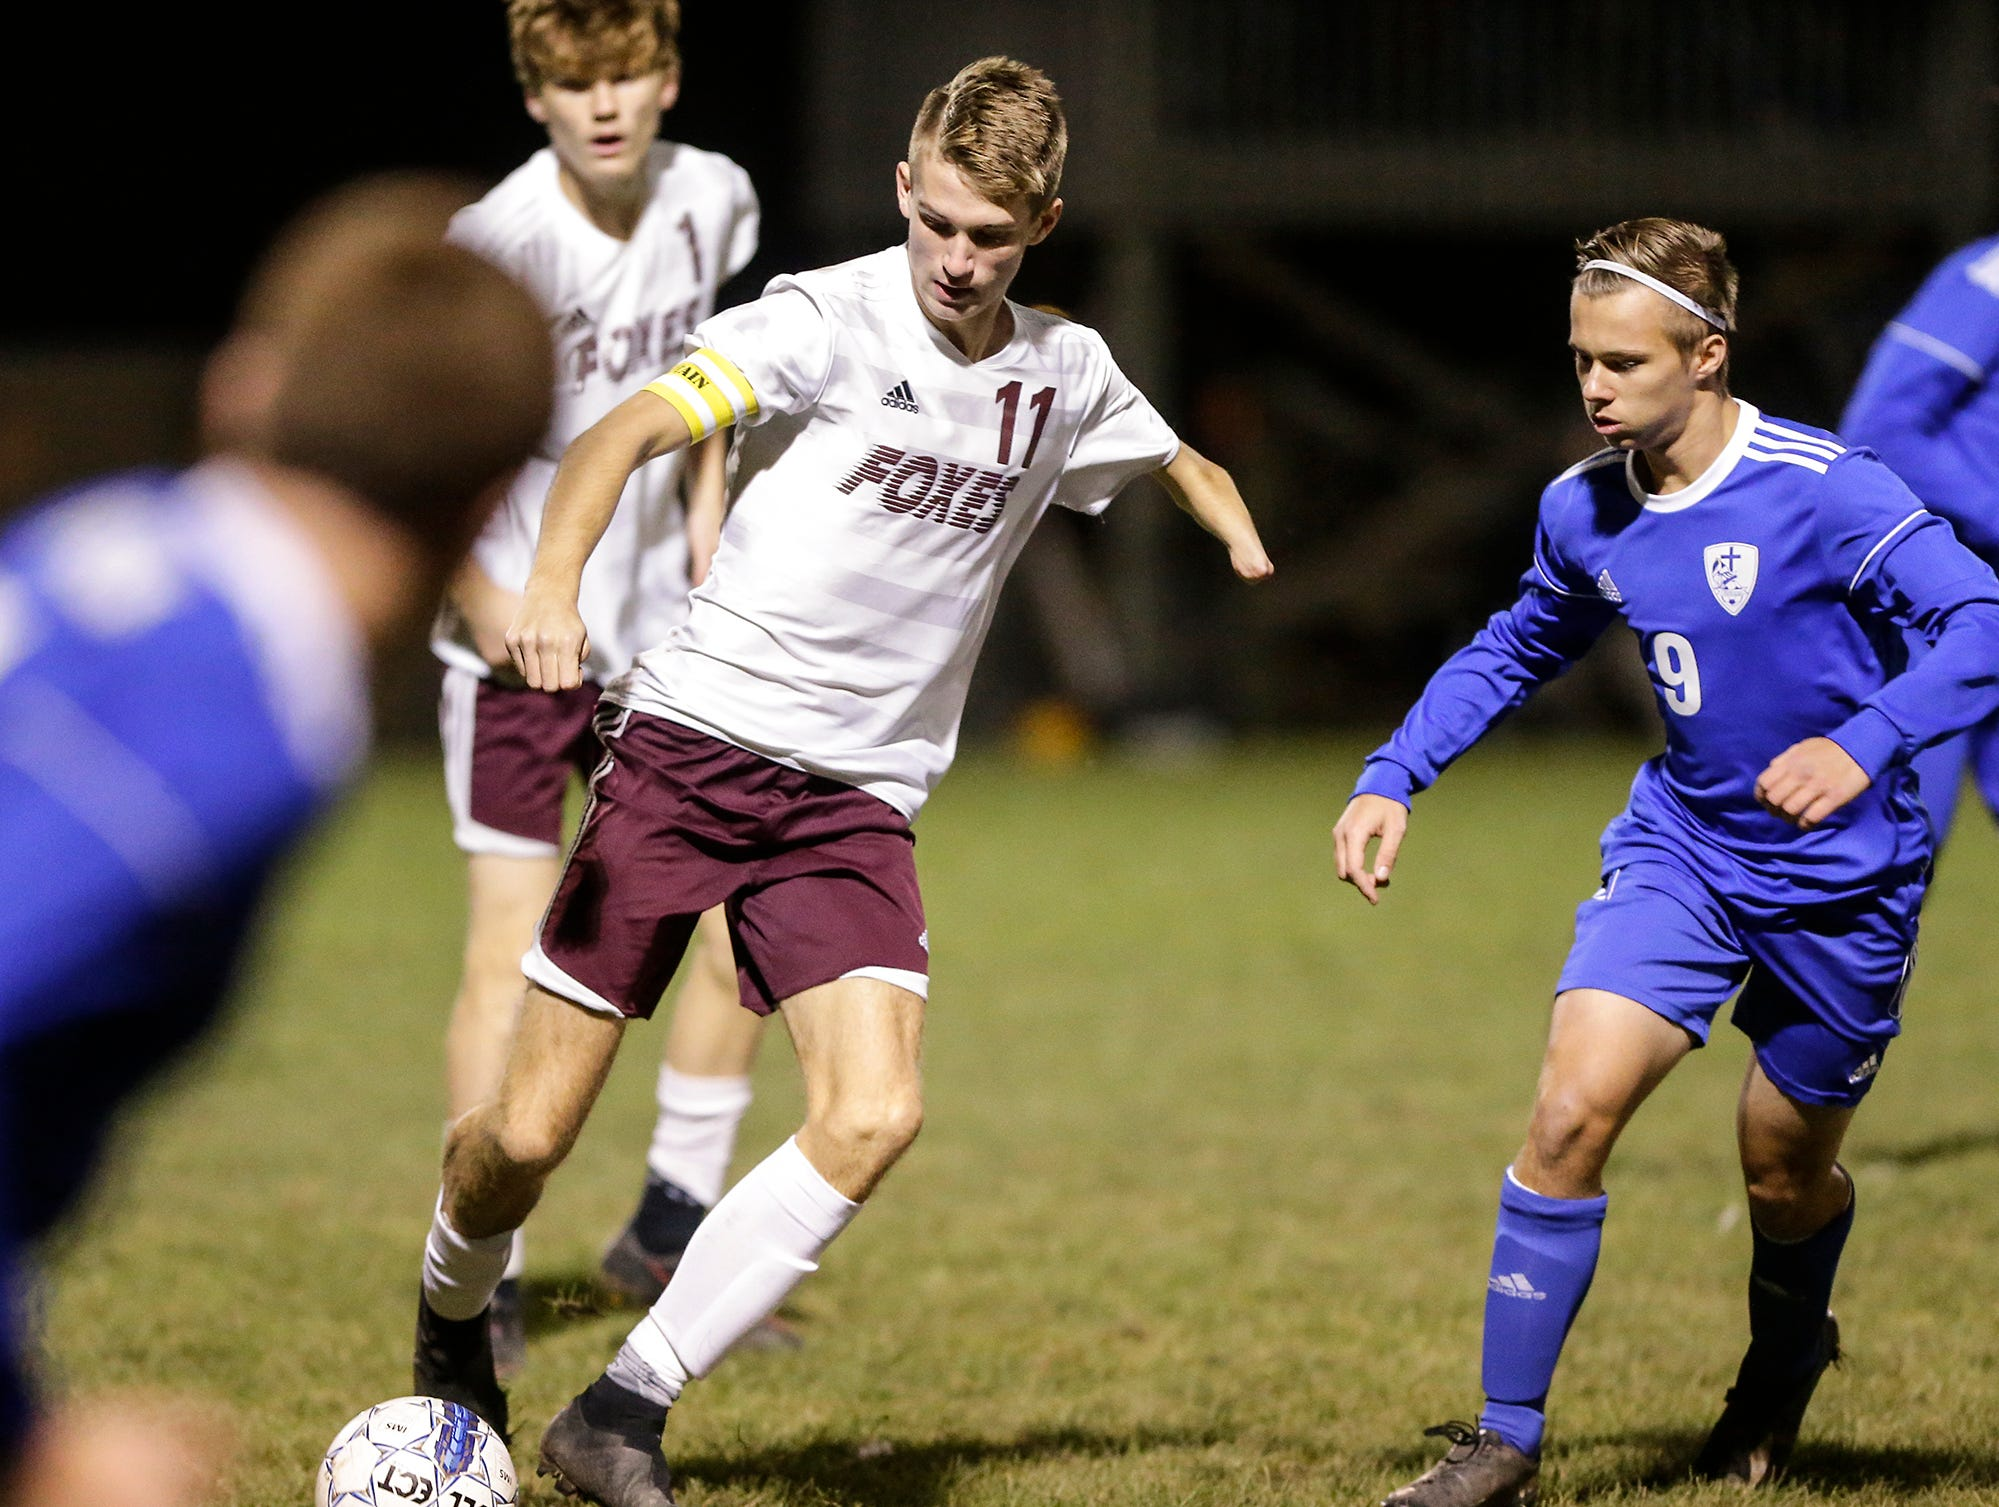 Omro High School soccer's Trevor Molitor works his way down the field against Winnebago Lutheran Academy during their WIAA regional playoff game Thursday, October 18, 2018 in Fond du Lac, Wisconsin. Doug Raflik/USA TODAY NETWORK-Wisconsin